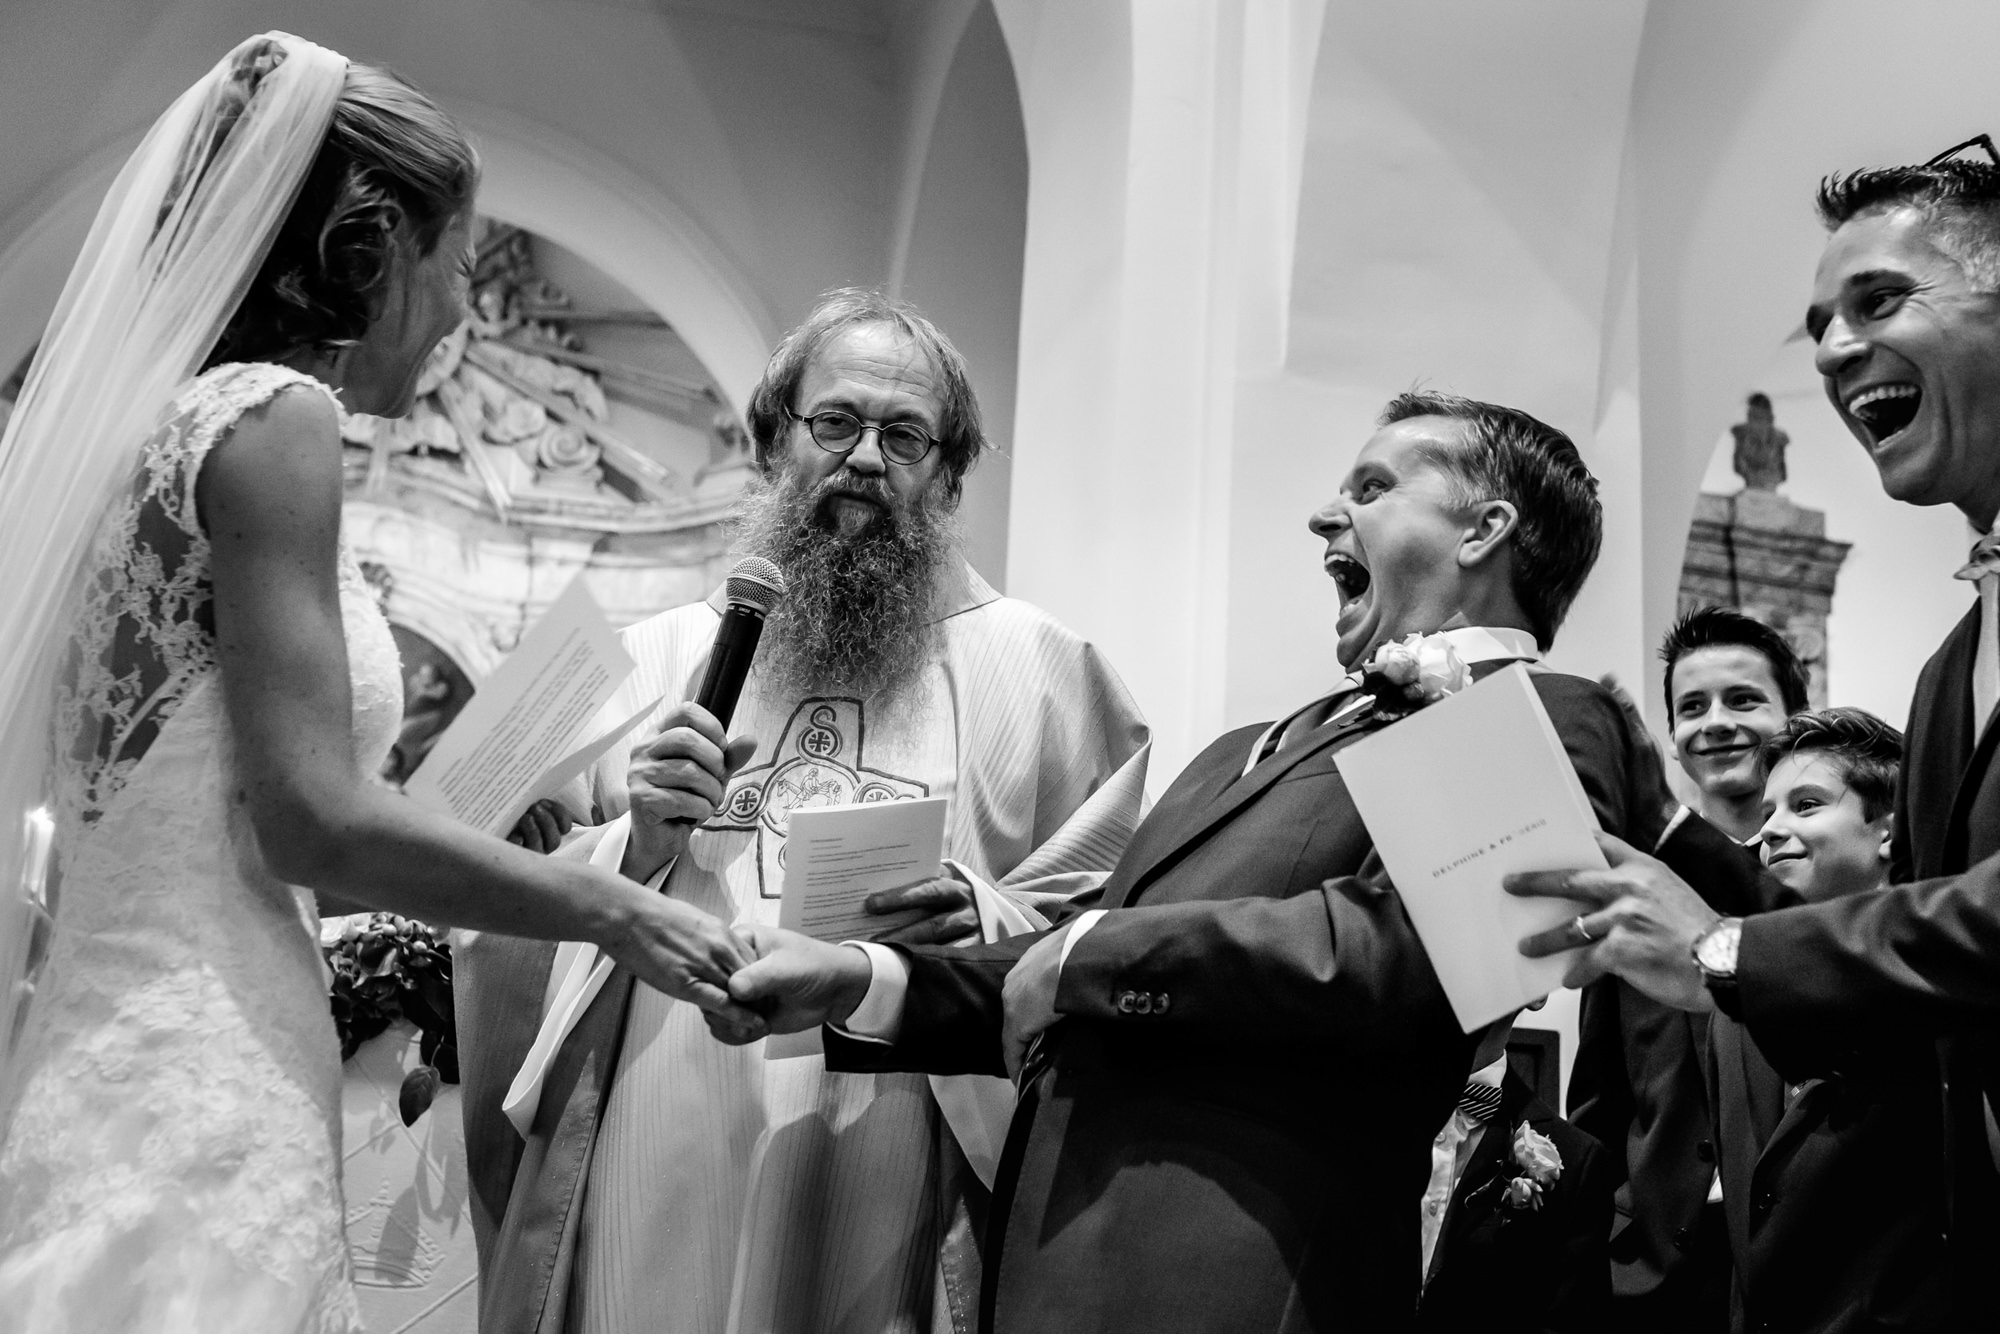 groom-laughs-uproariously-during-ceremony-philippe-swiggers-brussels-belgium-wedding-photographers